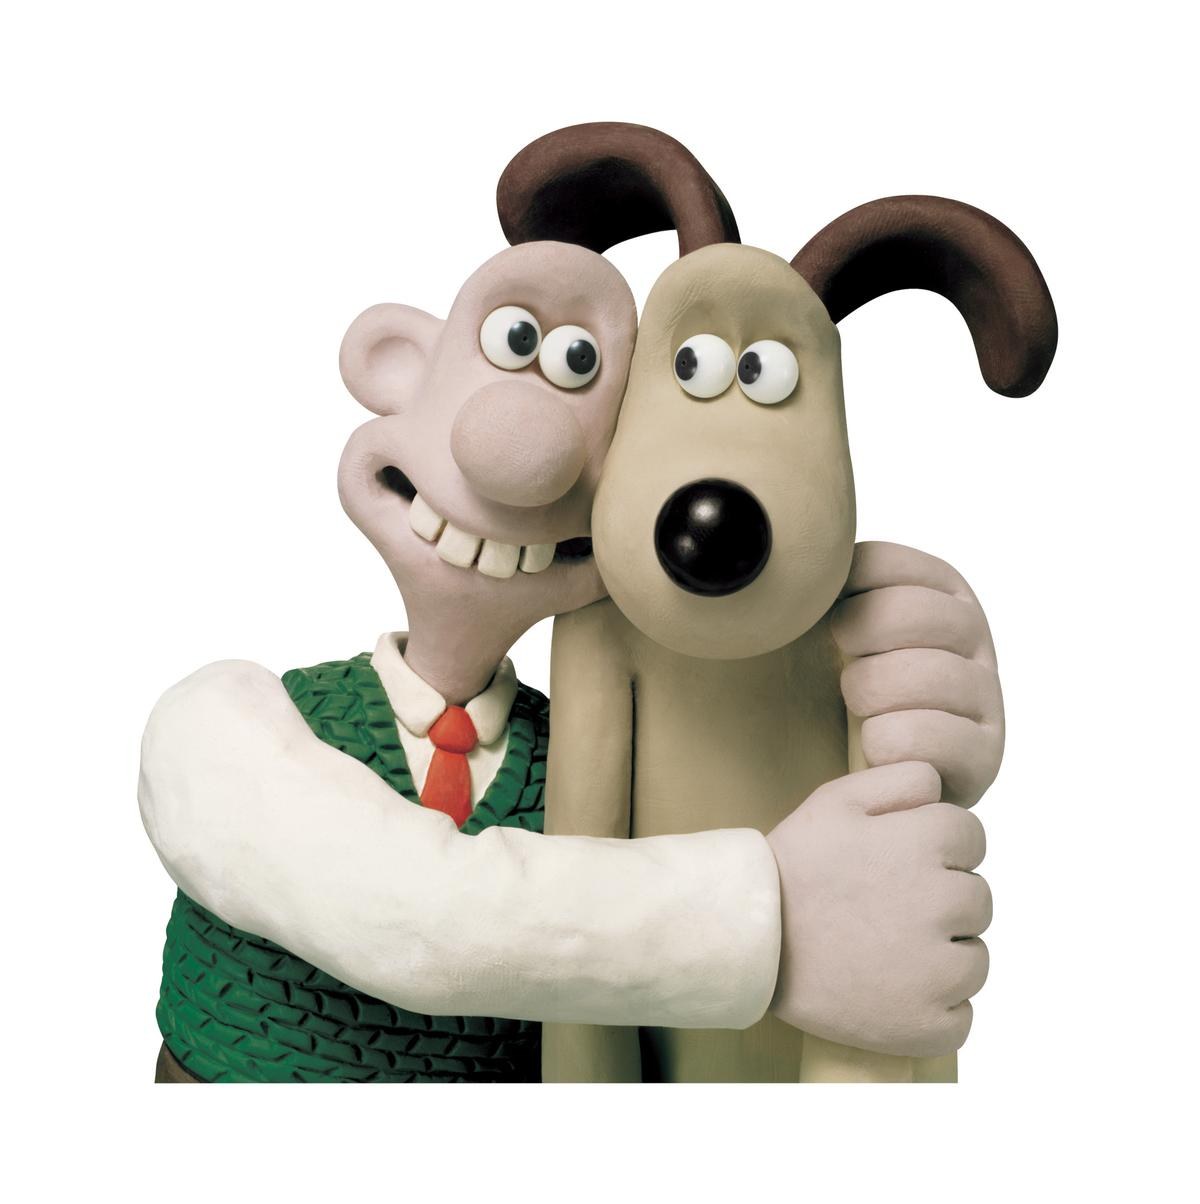 Fans of Wallace & Gromit will be able to join their adventures in a new immersive storytelling experience